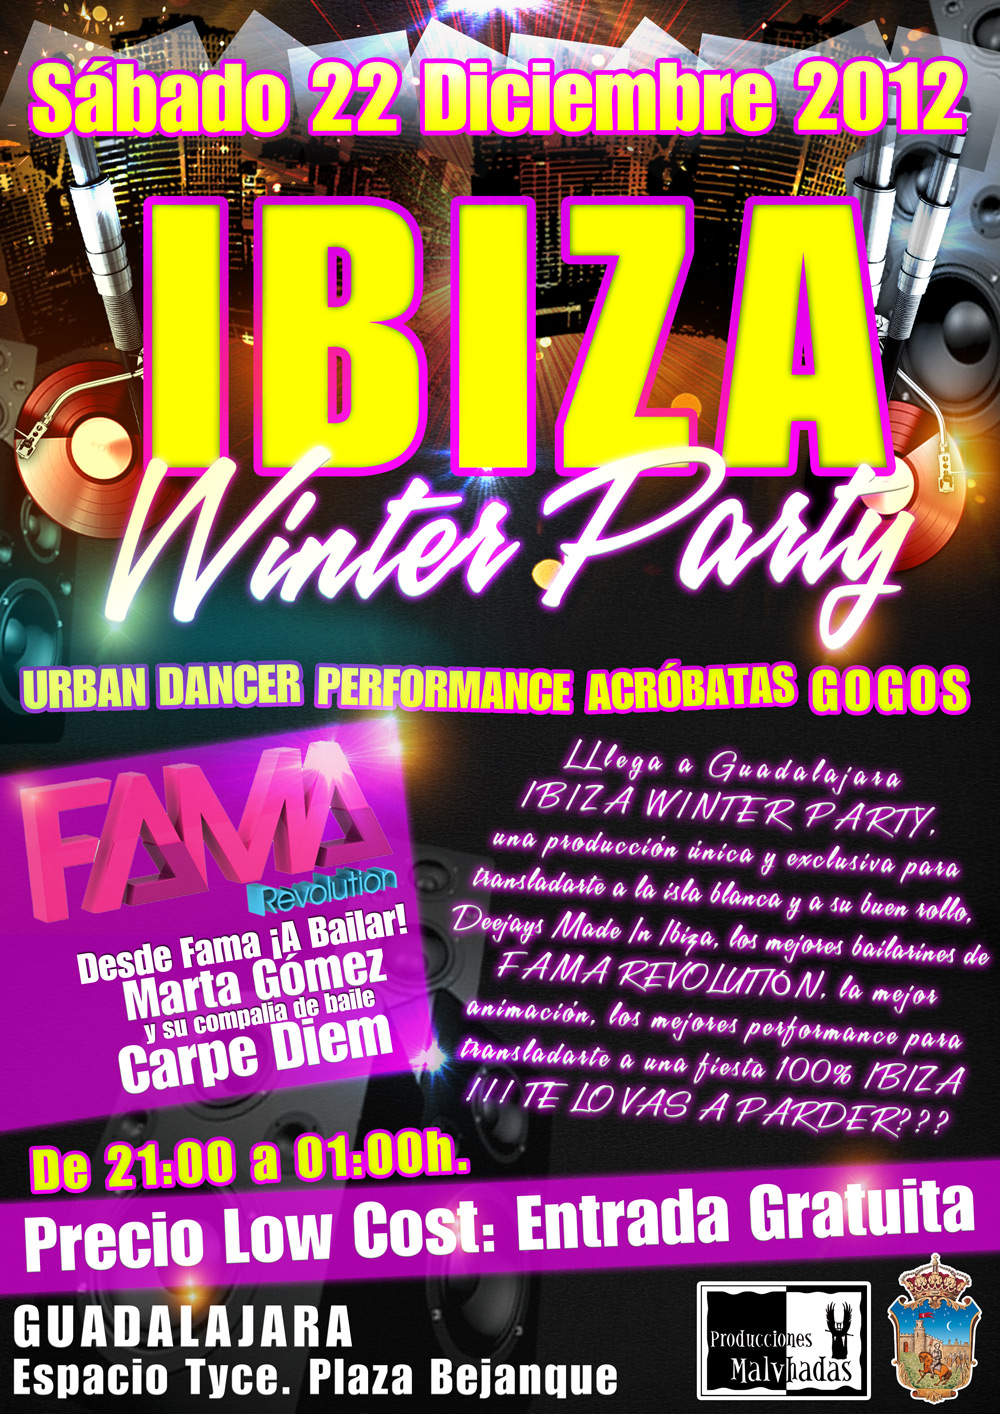 Ibiza-winter-party-redes-sociales.jpg